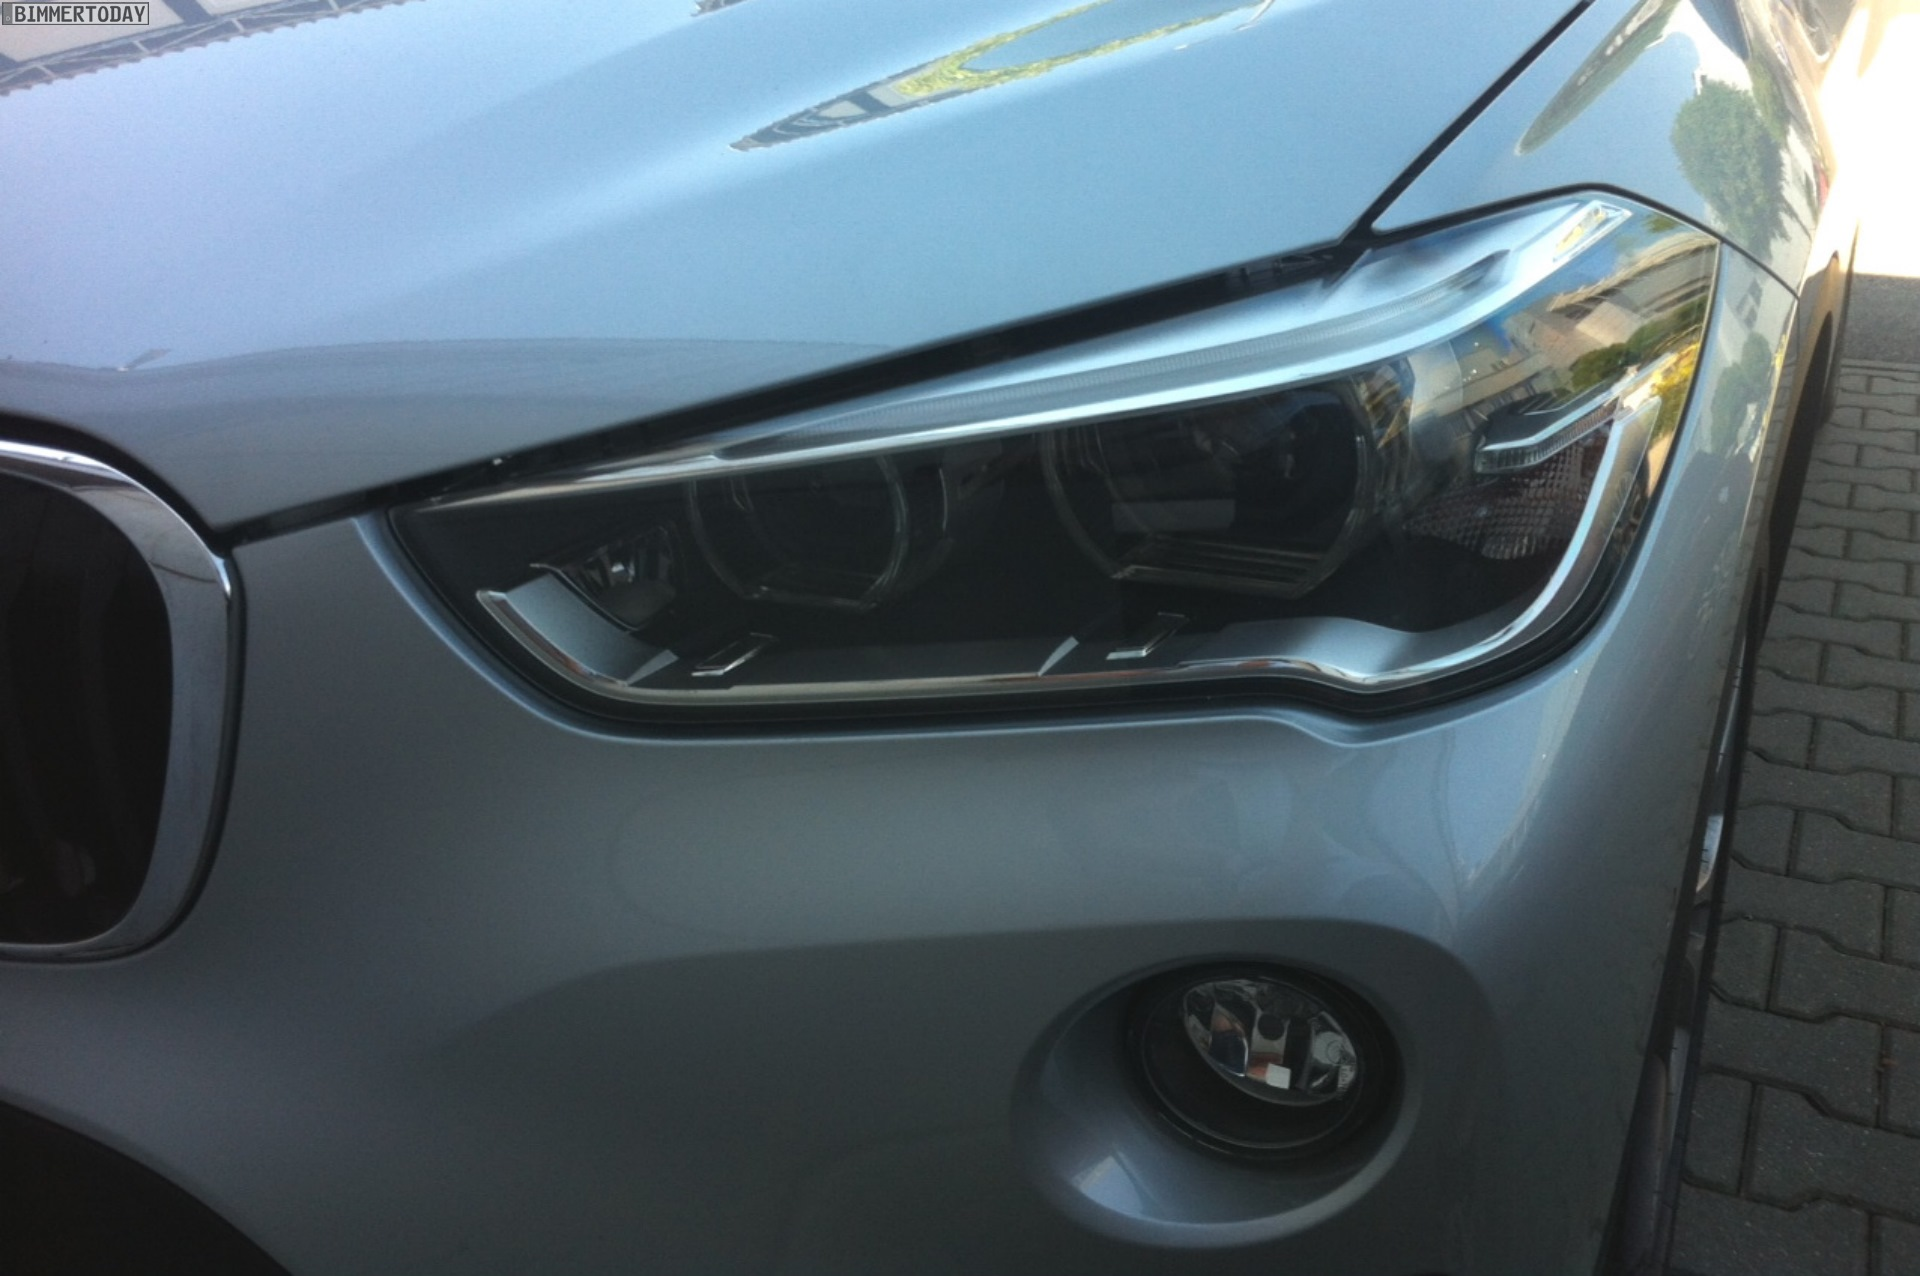 2016 BMW X1 headlamp spotted in the wild post unveil